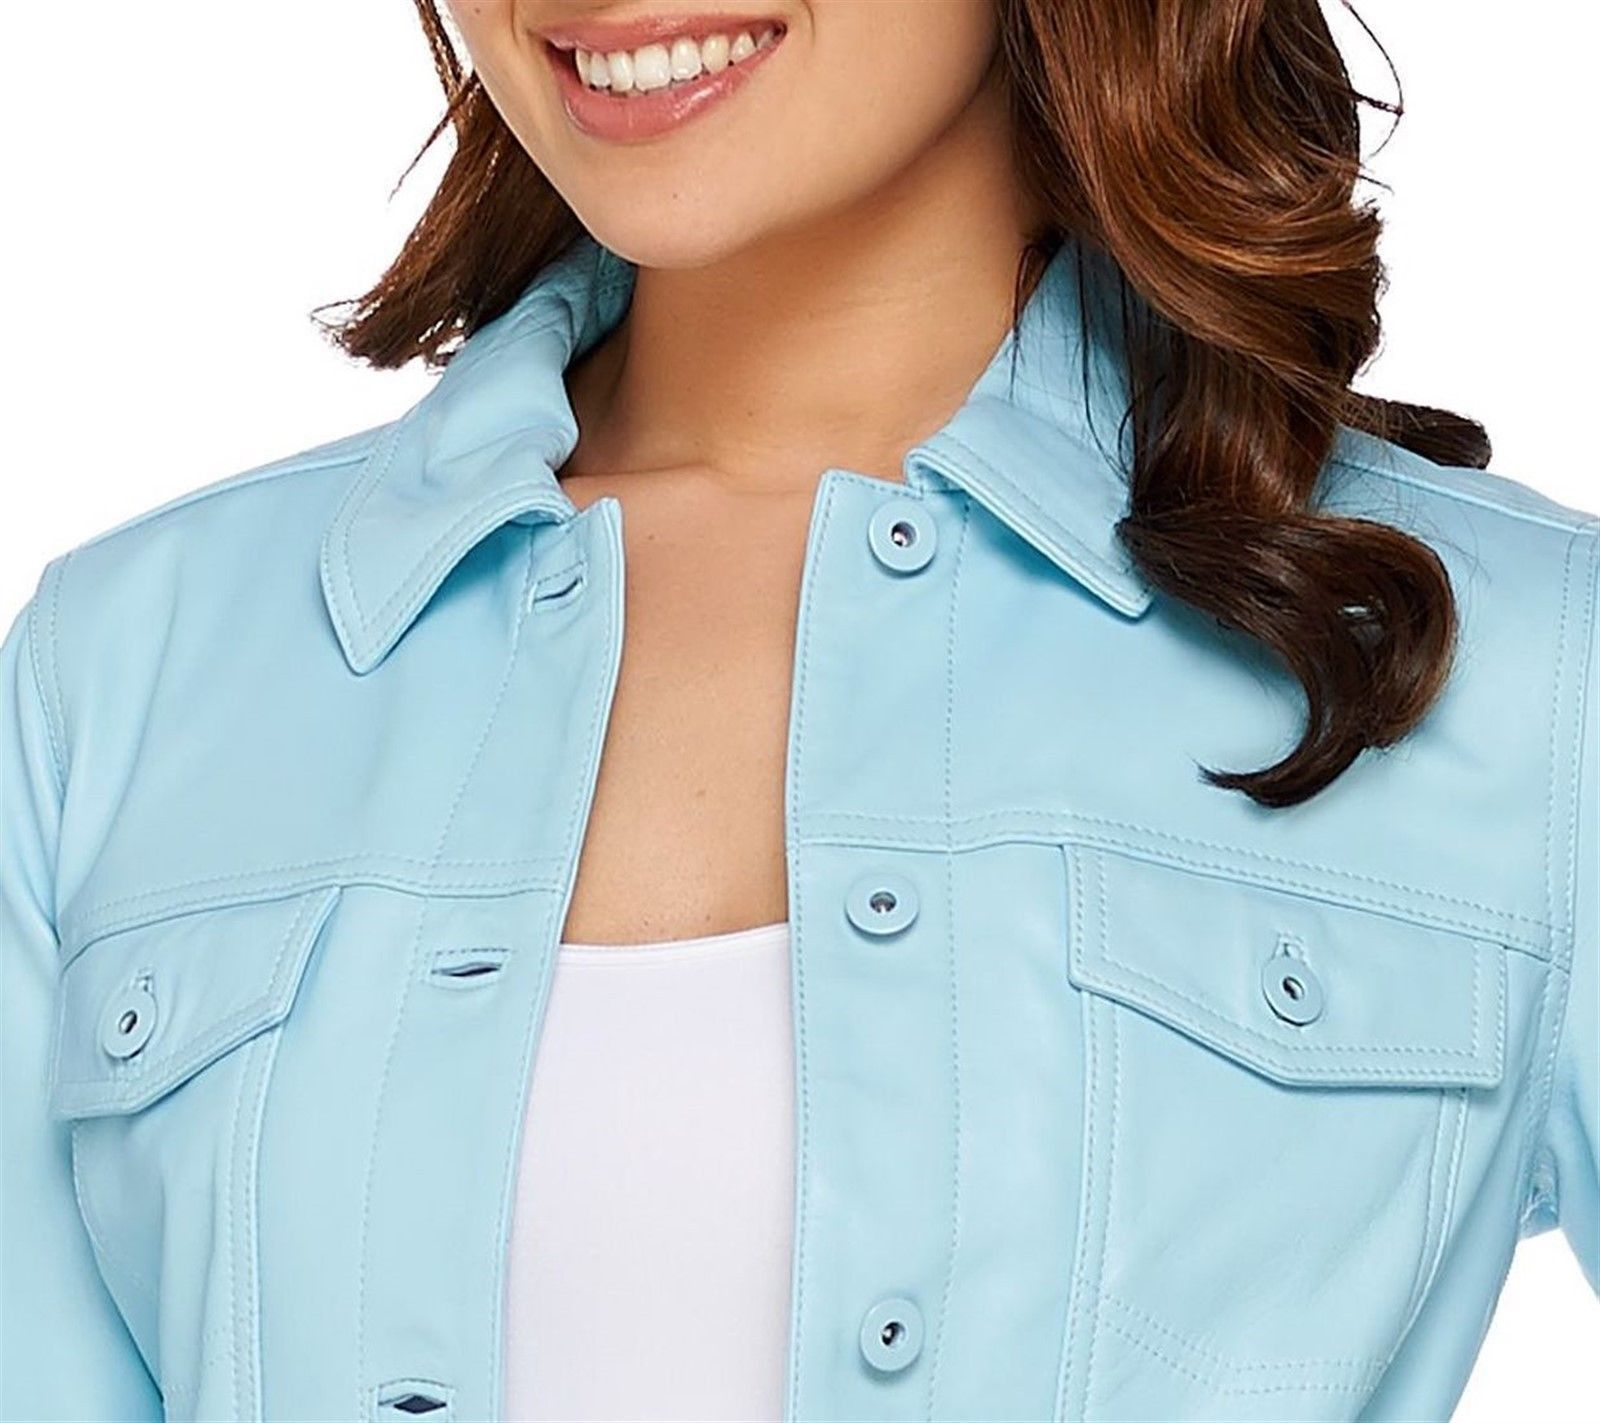 Denim & Co. Lamb Leather Jean Jacket, Light Turquoise, Size XS, MSRP $289